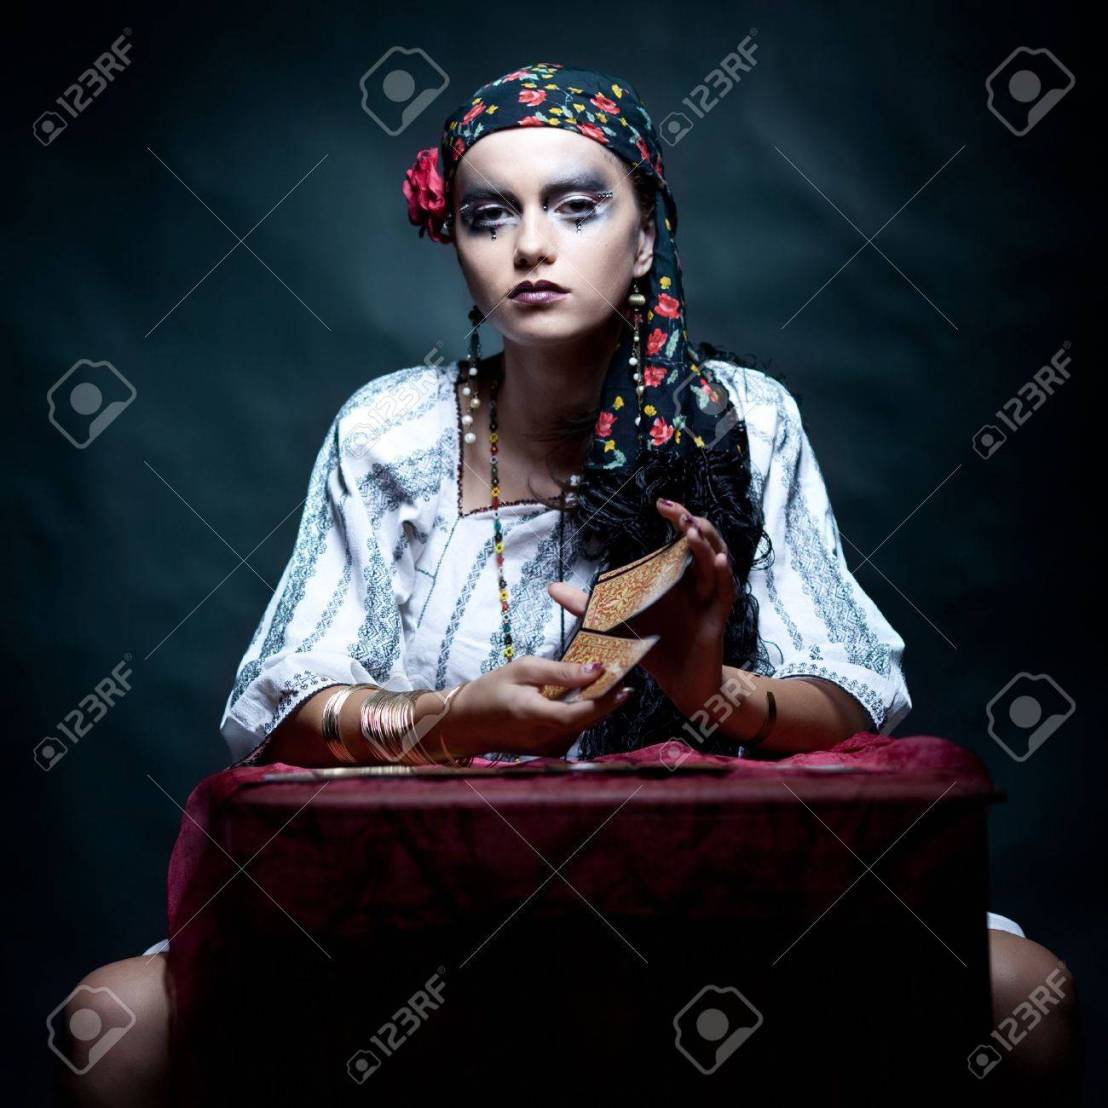 8894649-a-portrait-of-a-gypsy-fortune-teller-sitting-at-a-table-and-mixing-the-tarot-cards-that-she-holds-in